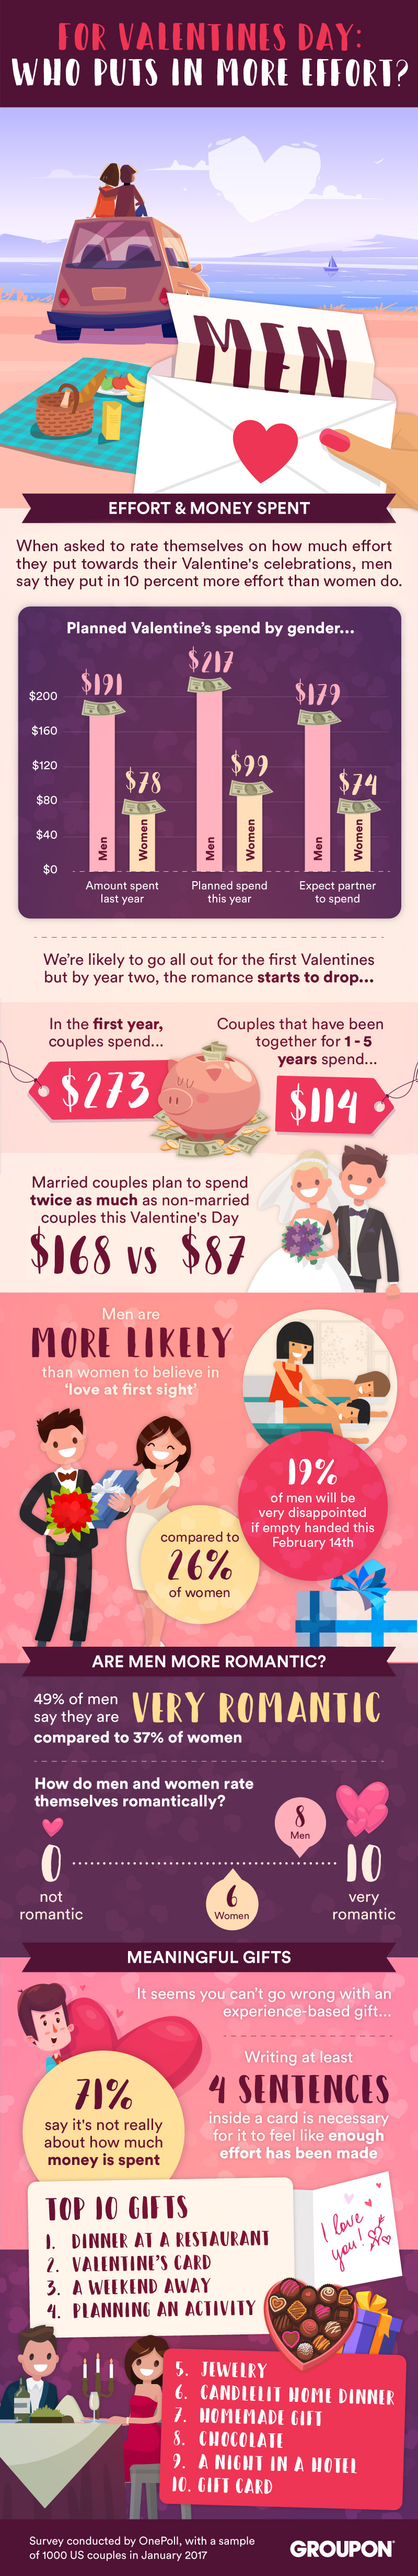 Groupon surveyed 1,000 Americans in relationships to see who puts in the most Valentine's Day effort. (Graphic: Business Wire)